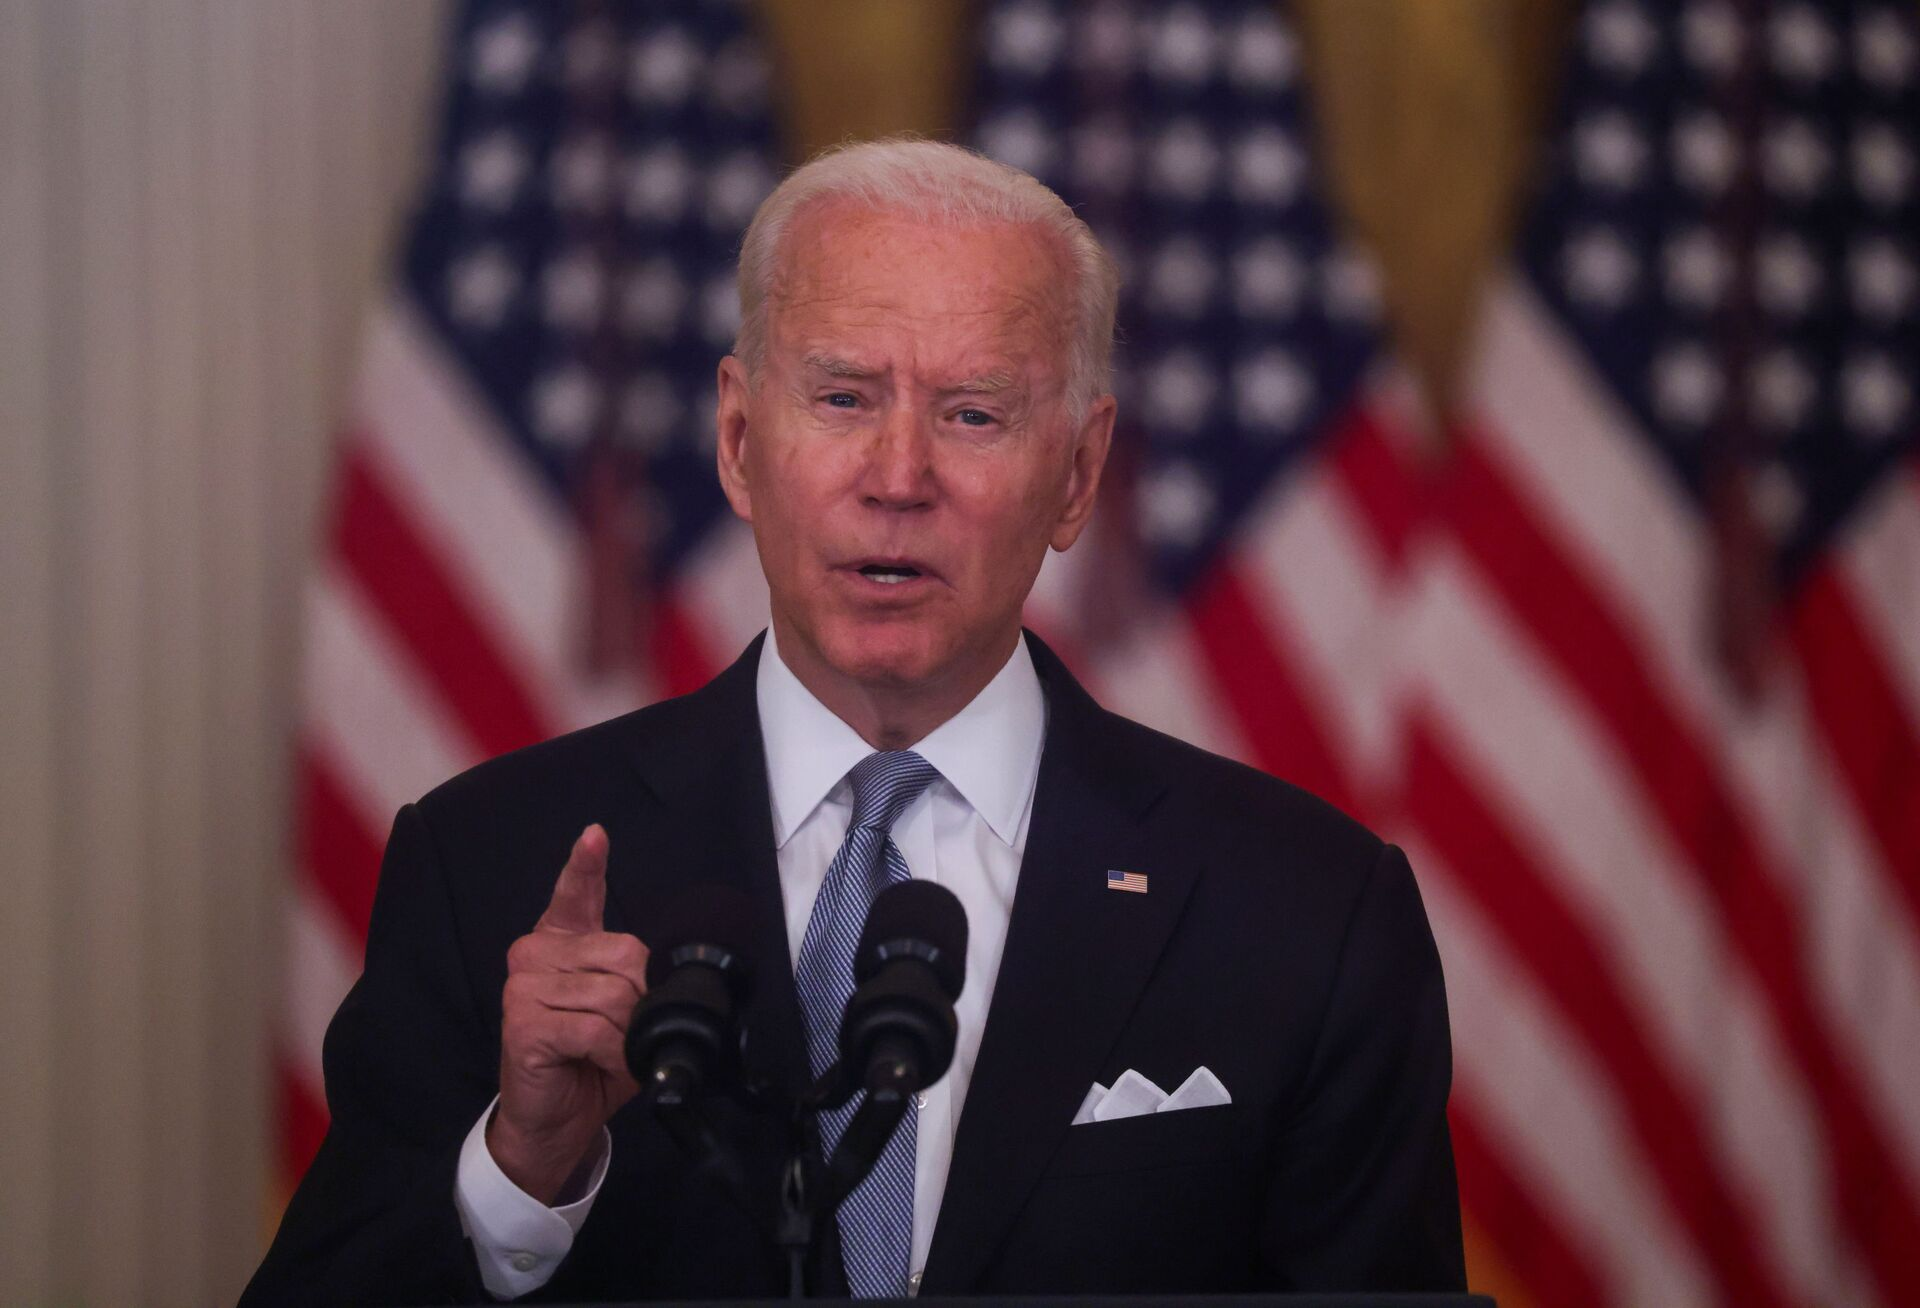 U.S. President Joe Biden delivers remarks on the crisis in Afghanistan during a speech in the East Room at the White House in Washington, U.S., August 16, 2021. - Sputnik International, 1920, 07.09.2021